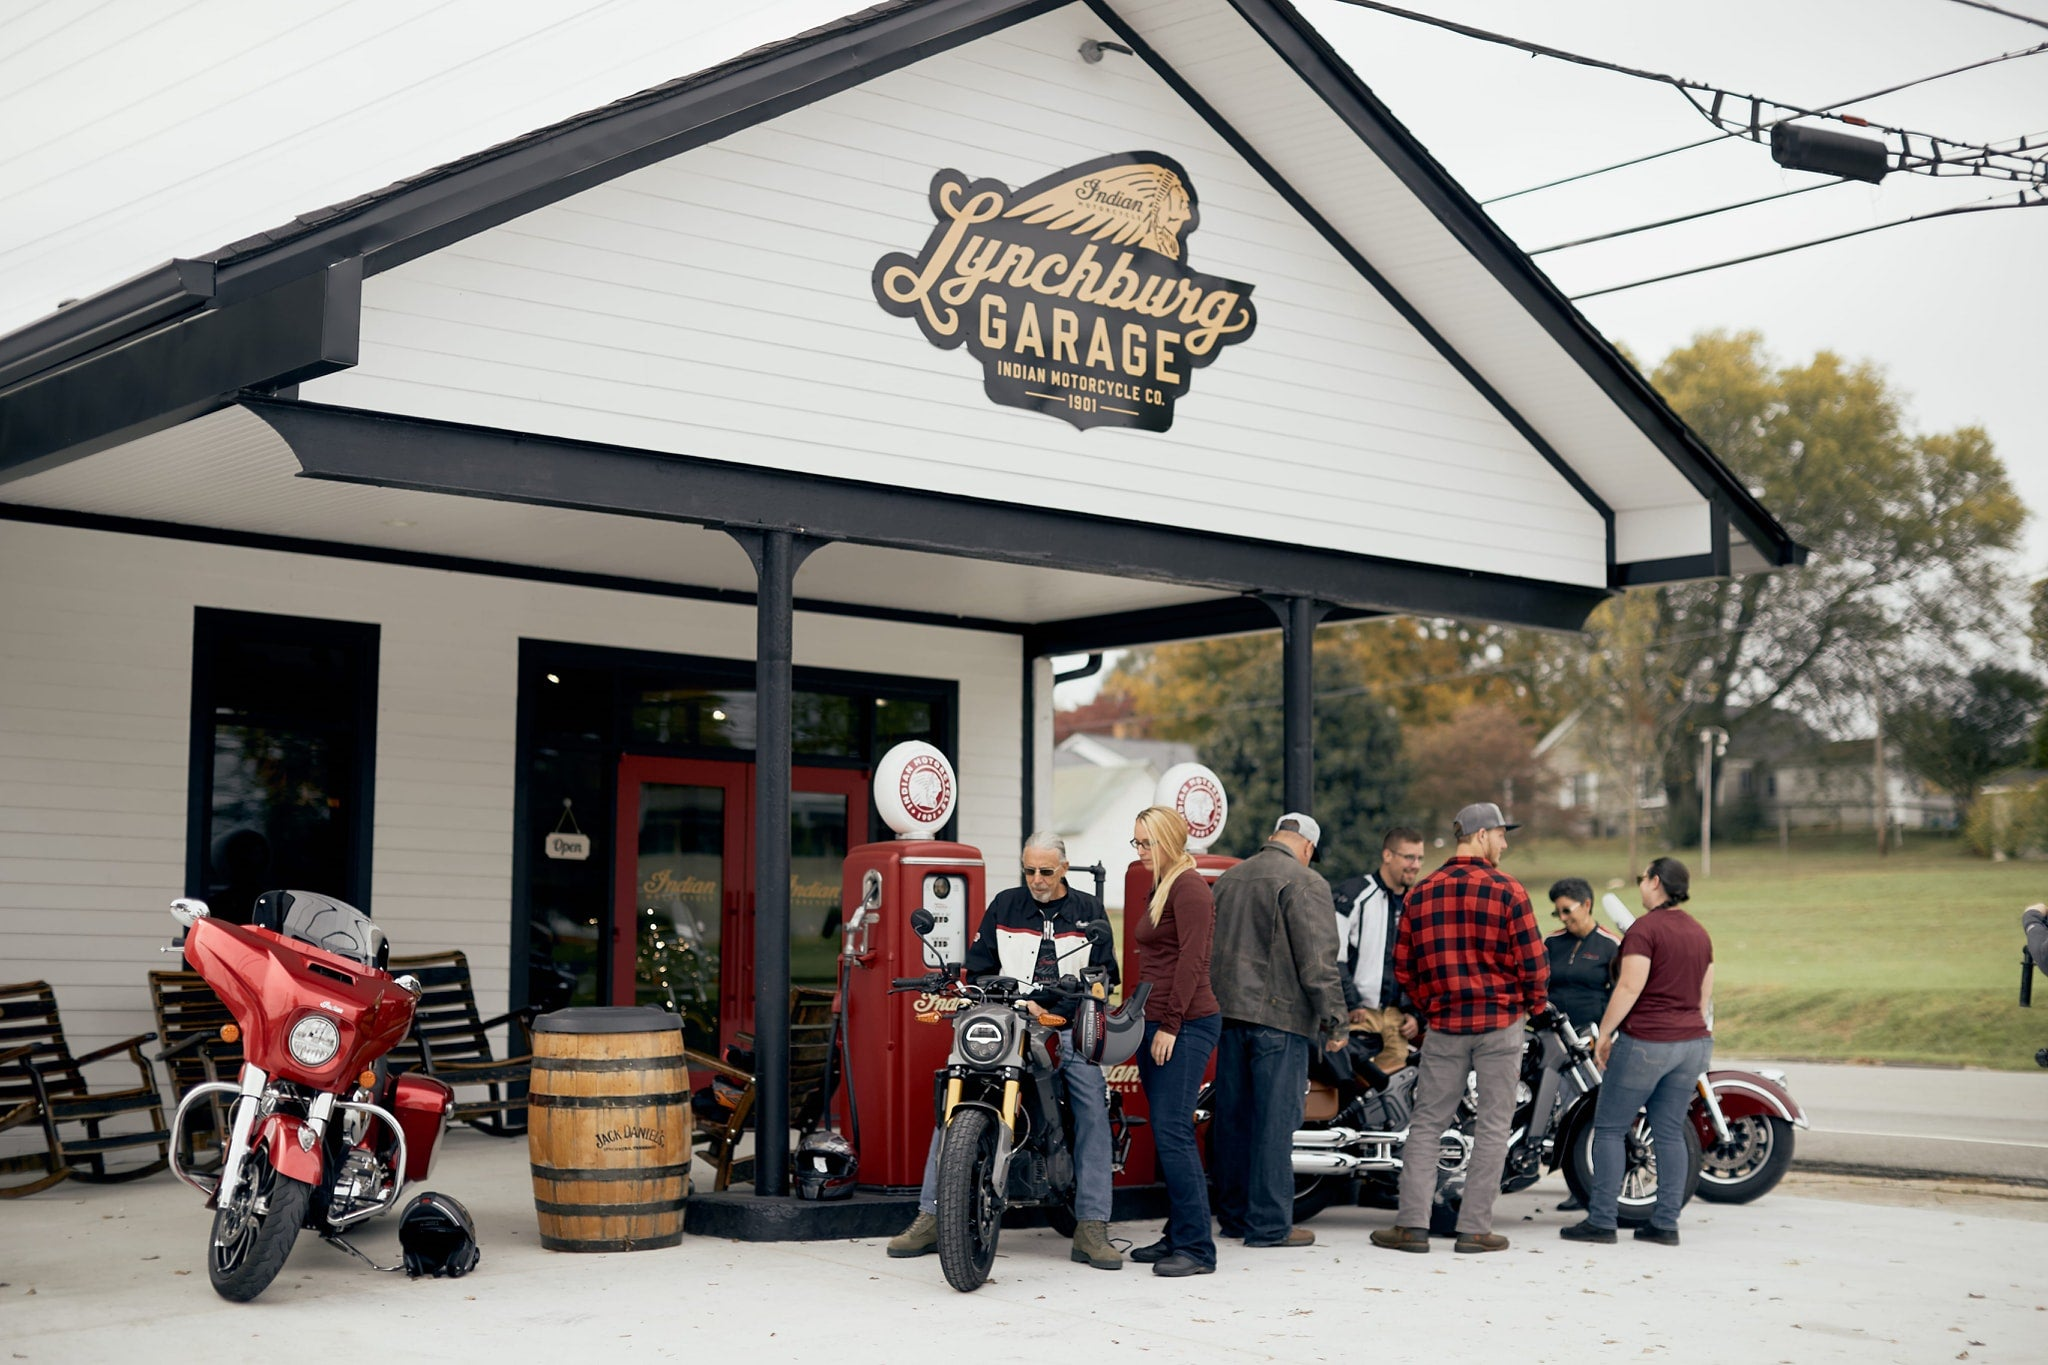 Lynchburg Garage exterior with customers gathered on motorcycles